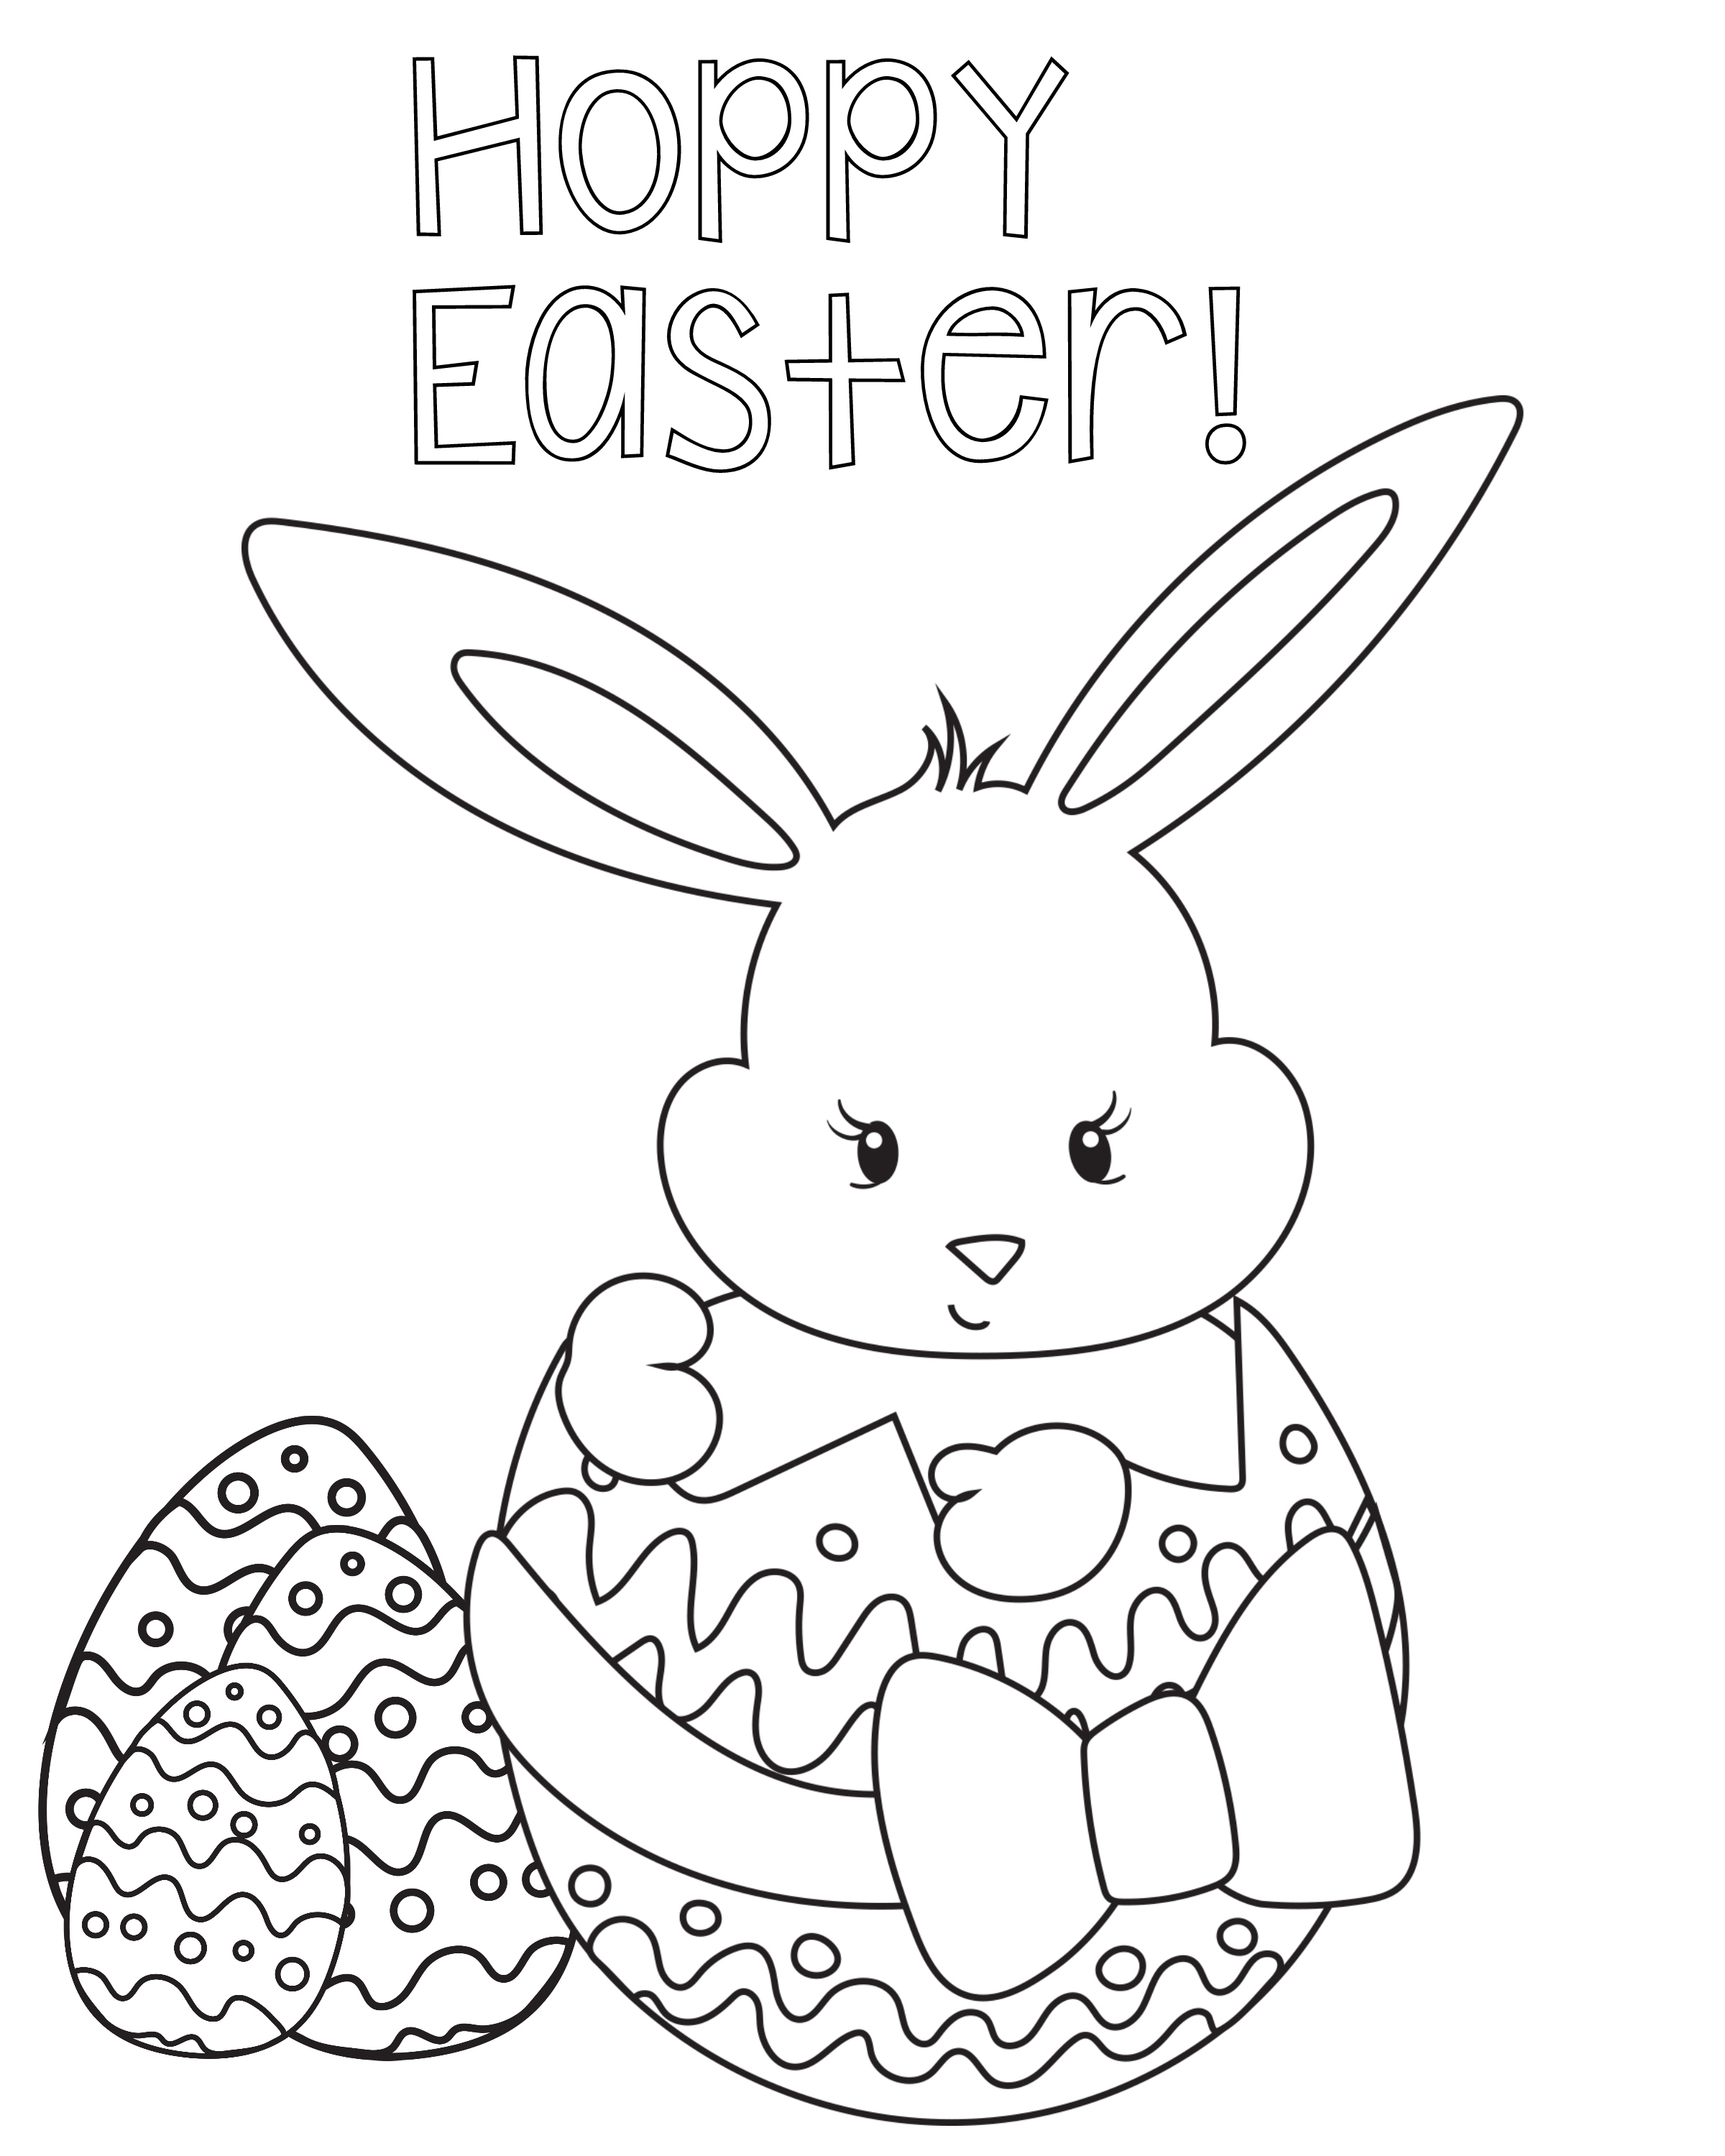 Coloring Easter Pages to Print Printable 18c - To print for your project